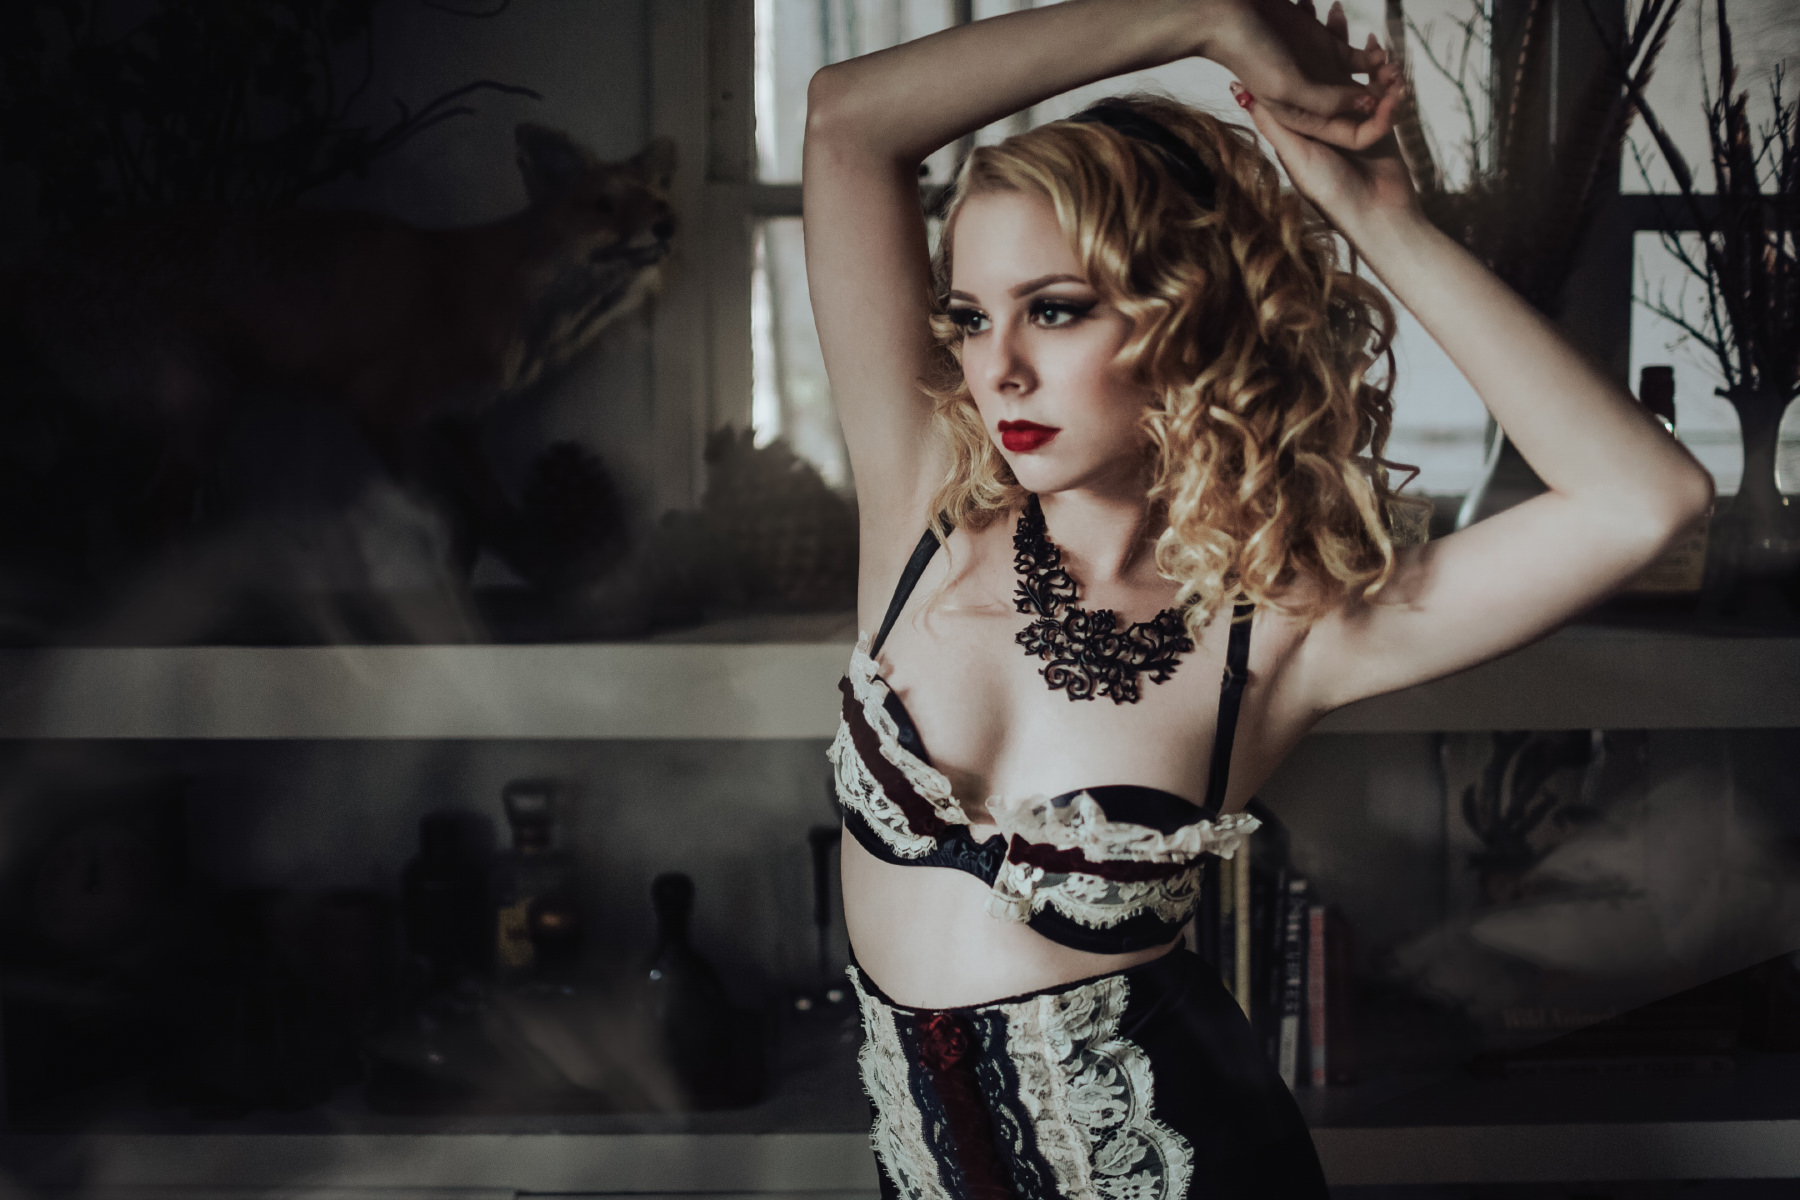 Alternative model Jacquelyne Marie posing in dark lingerie with taxidermy